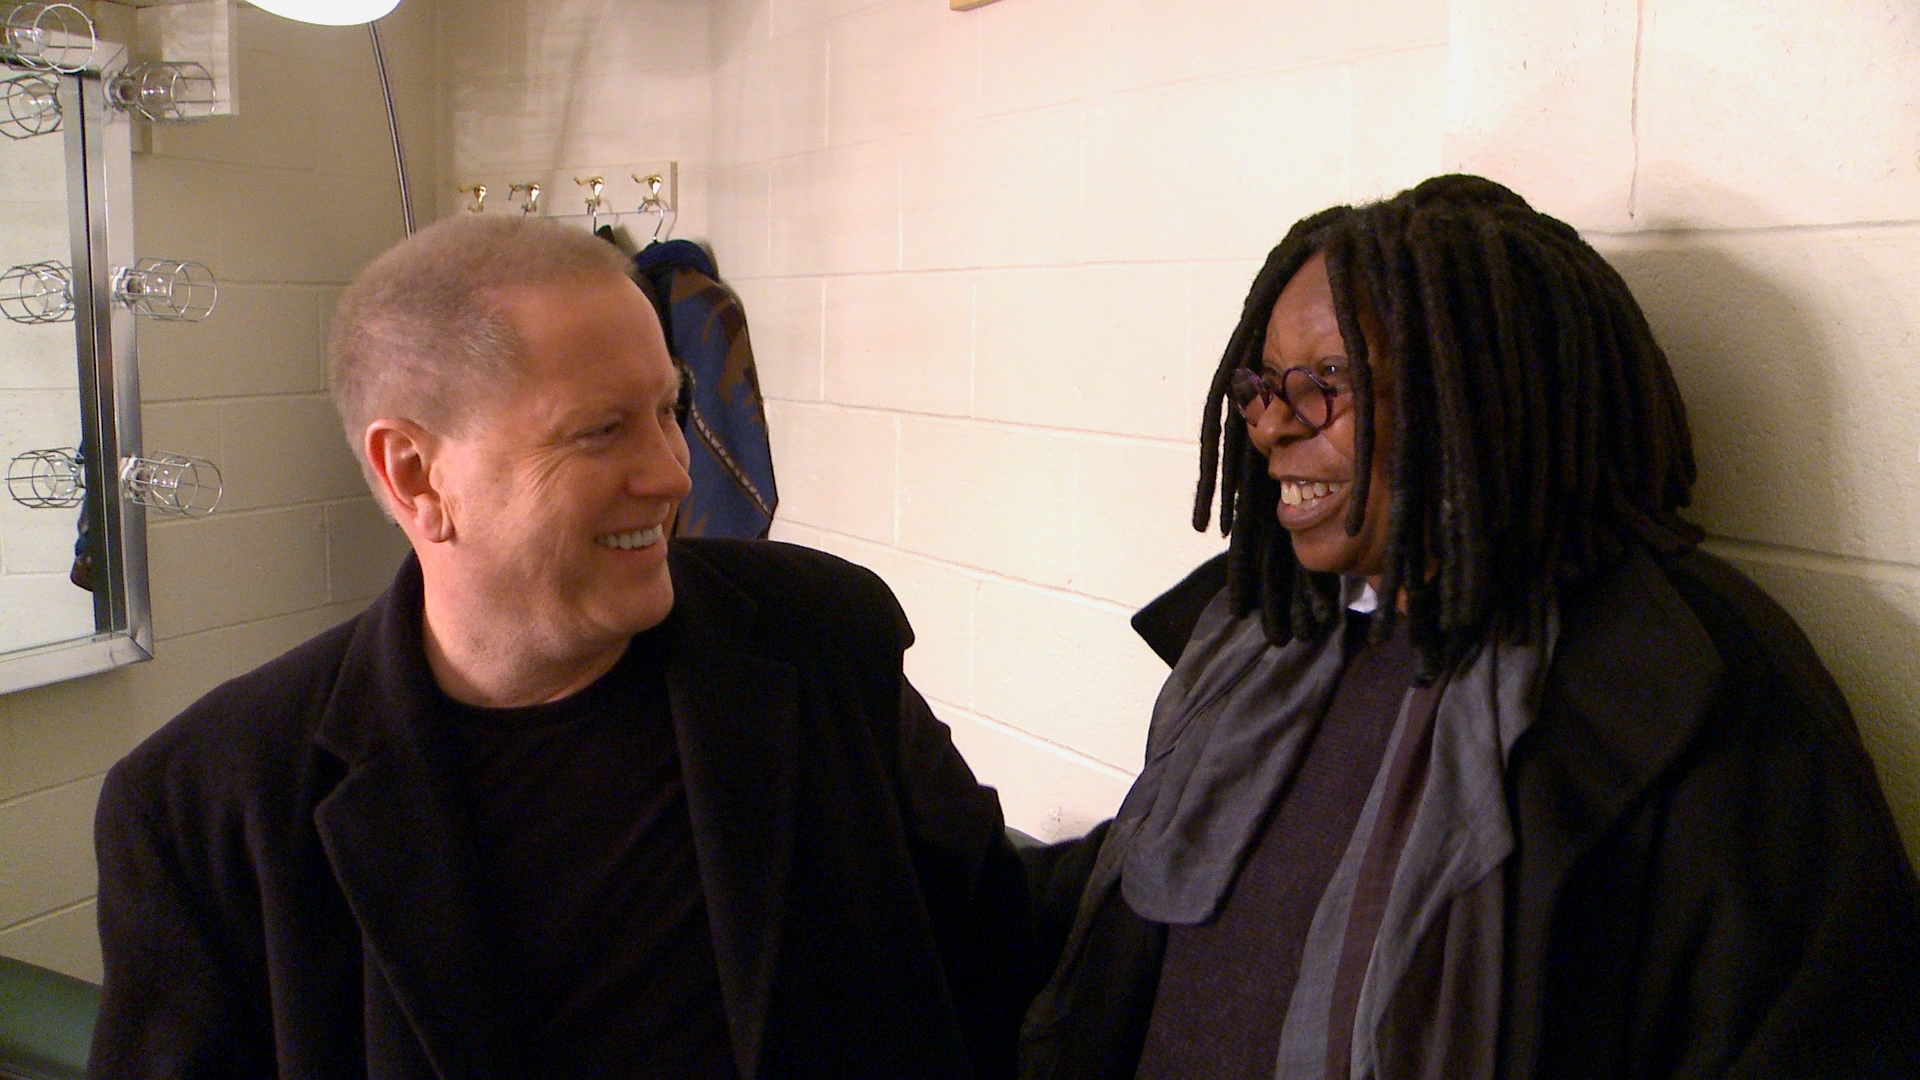 Darrell Hammond with Whoopi Goldberg - From the documentary film Cracked Up.